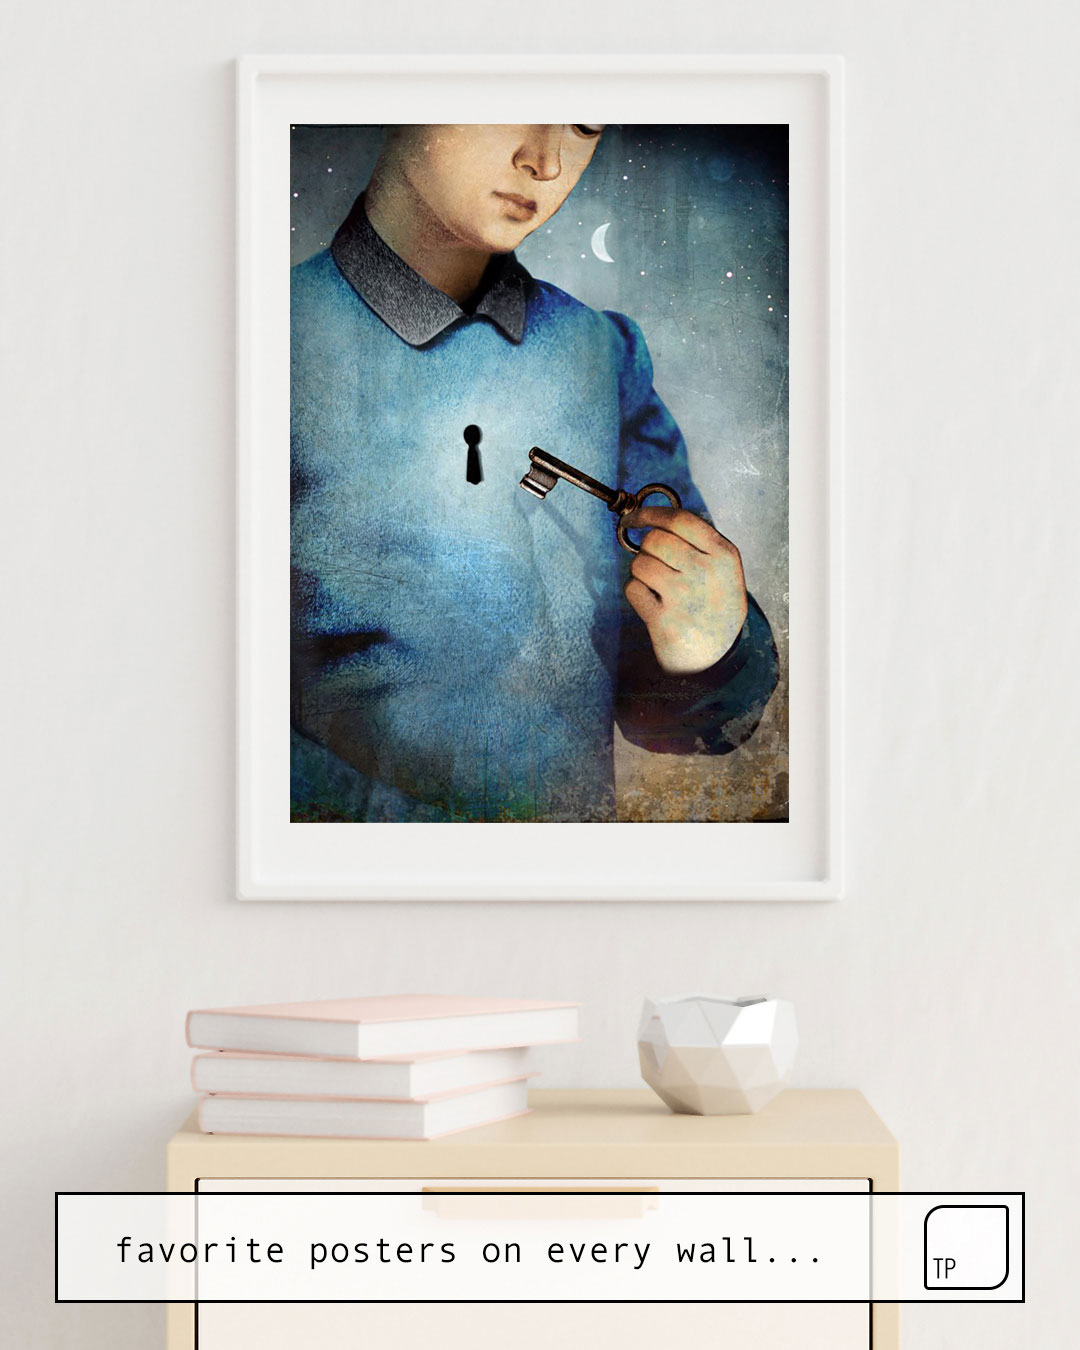 The photo shows an example of furnishing with the motif UNLOCK by Christian Schloe as mural